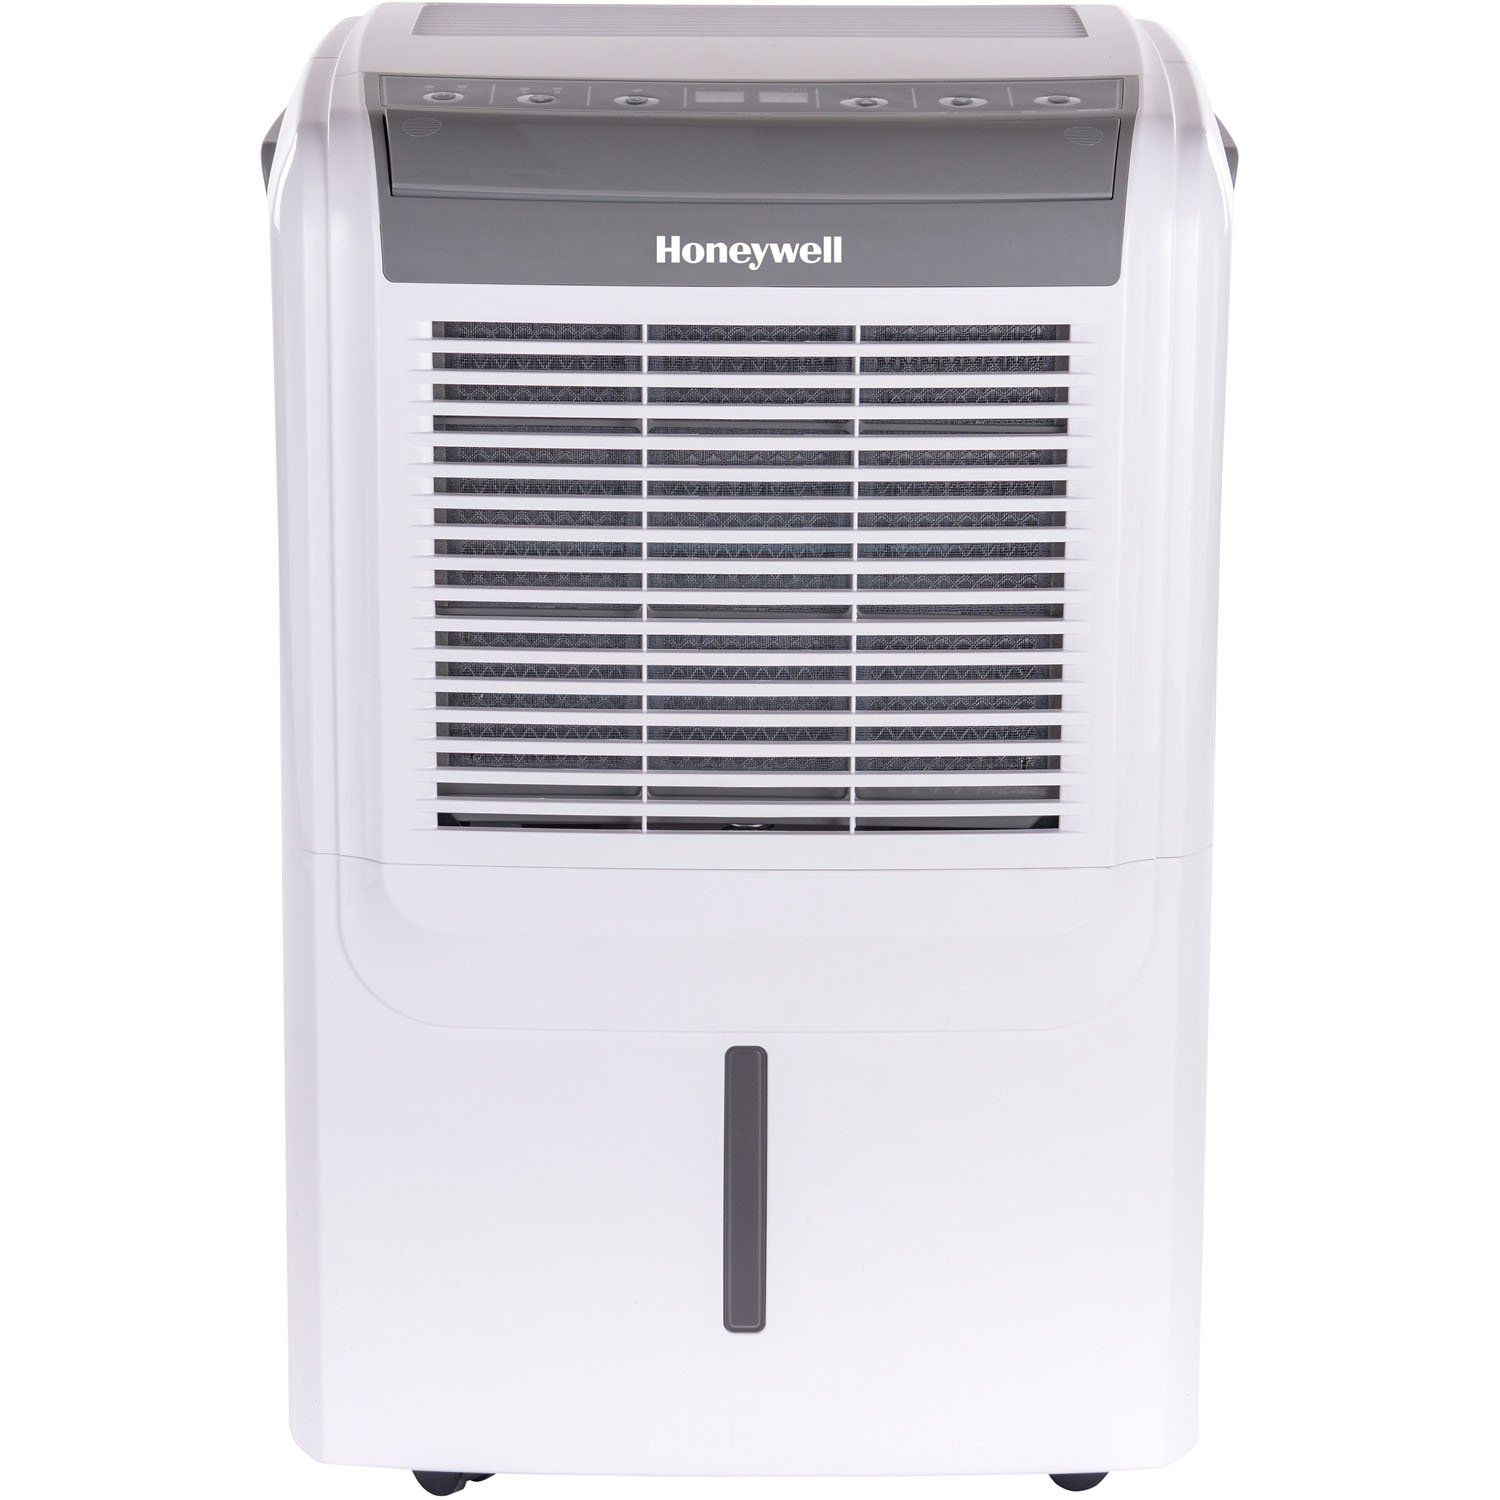 Honeywell DH70W Energy Star 70-Pint Dehumidifier Review